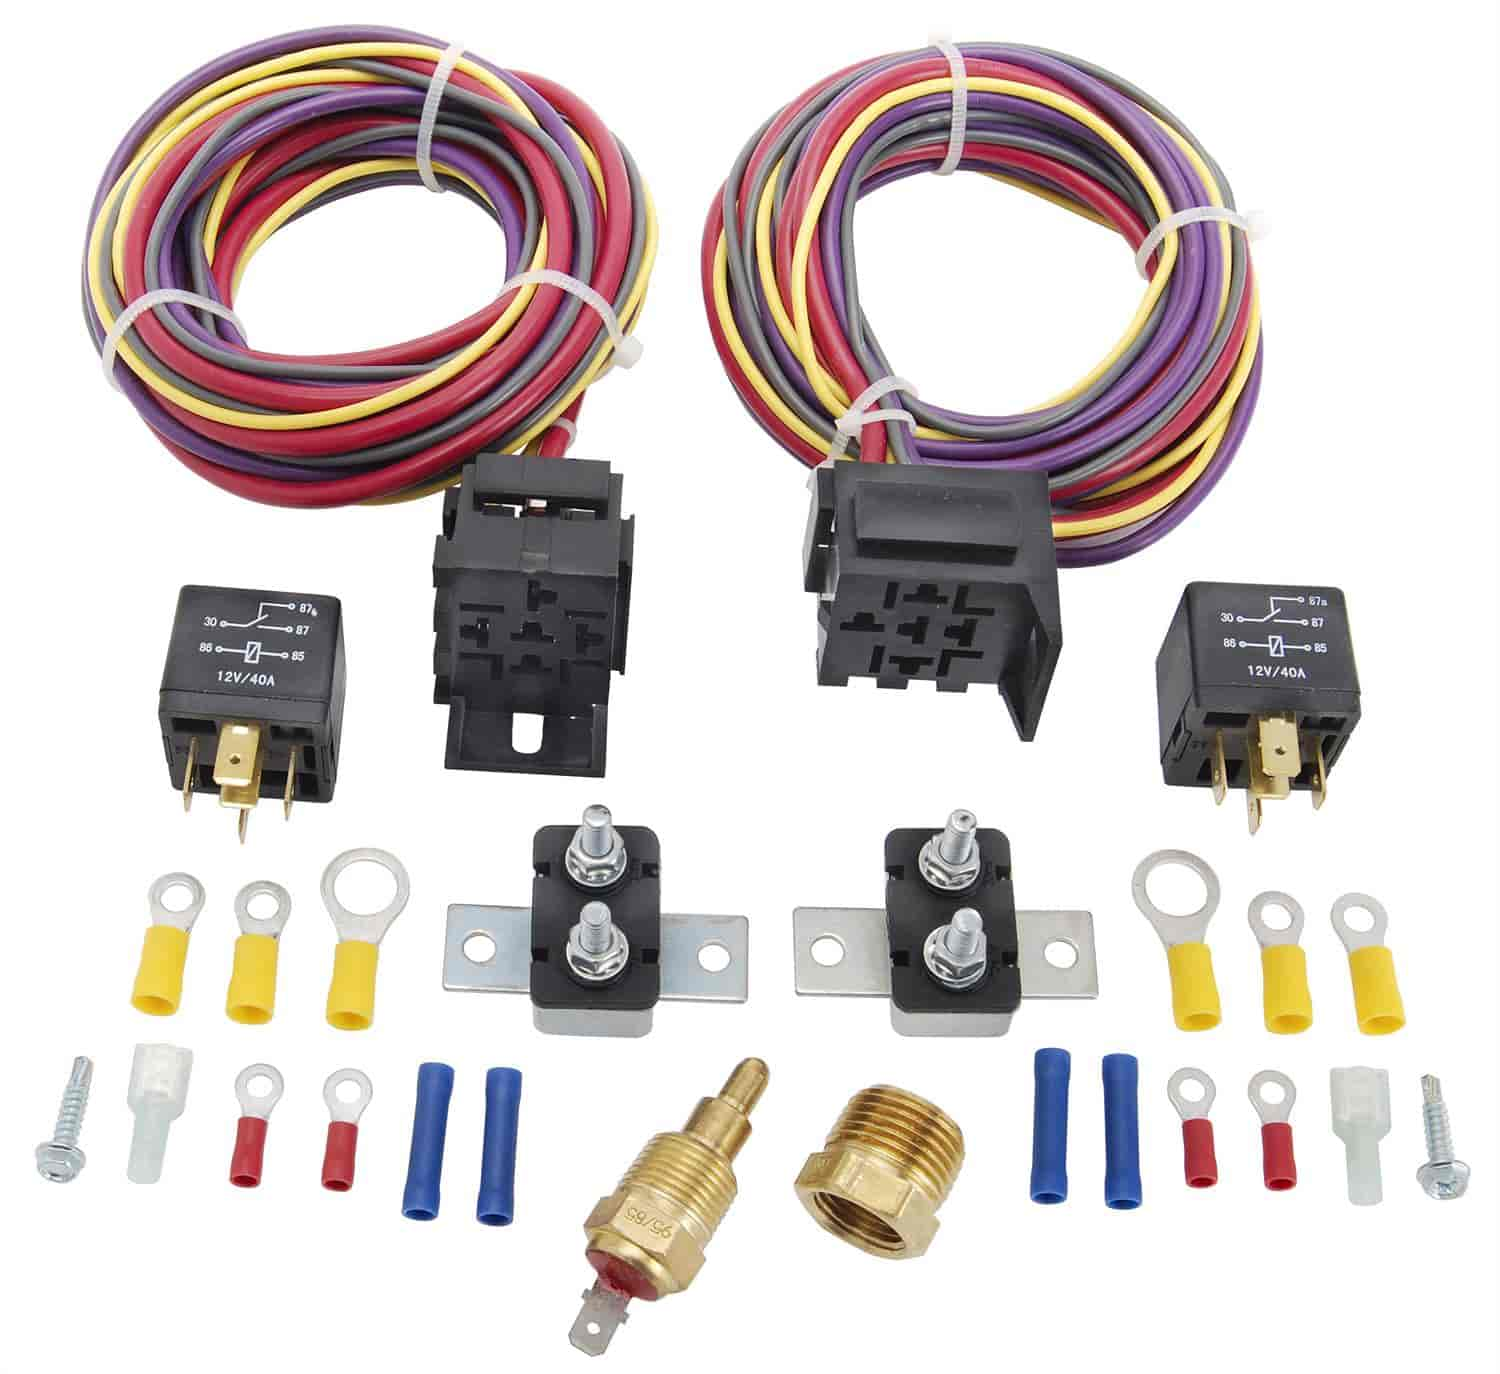 555 10571 jegs performance products 10571 dual fan wiring harness & relay VW Wiring Harness Kits at suagrazia.org